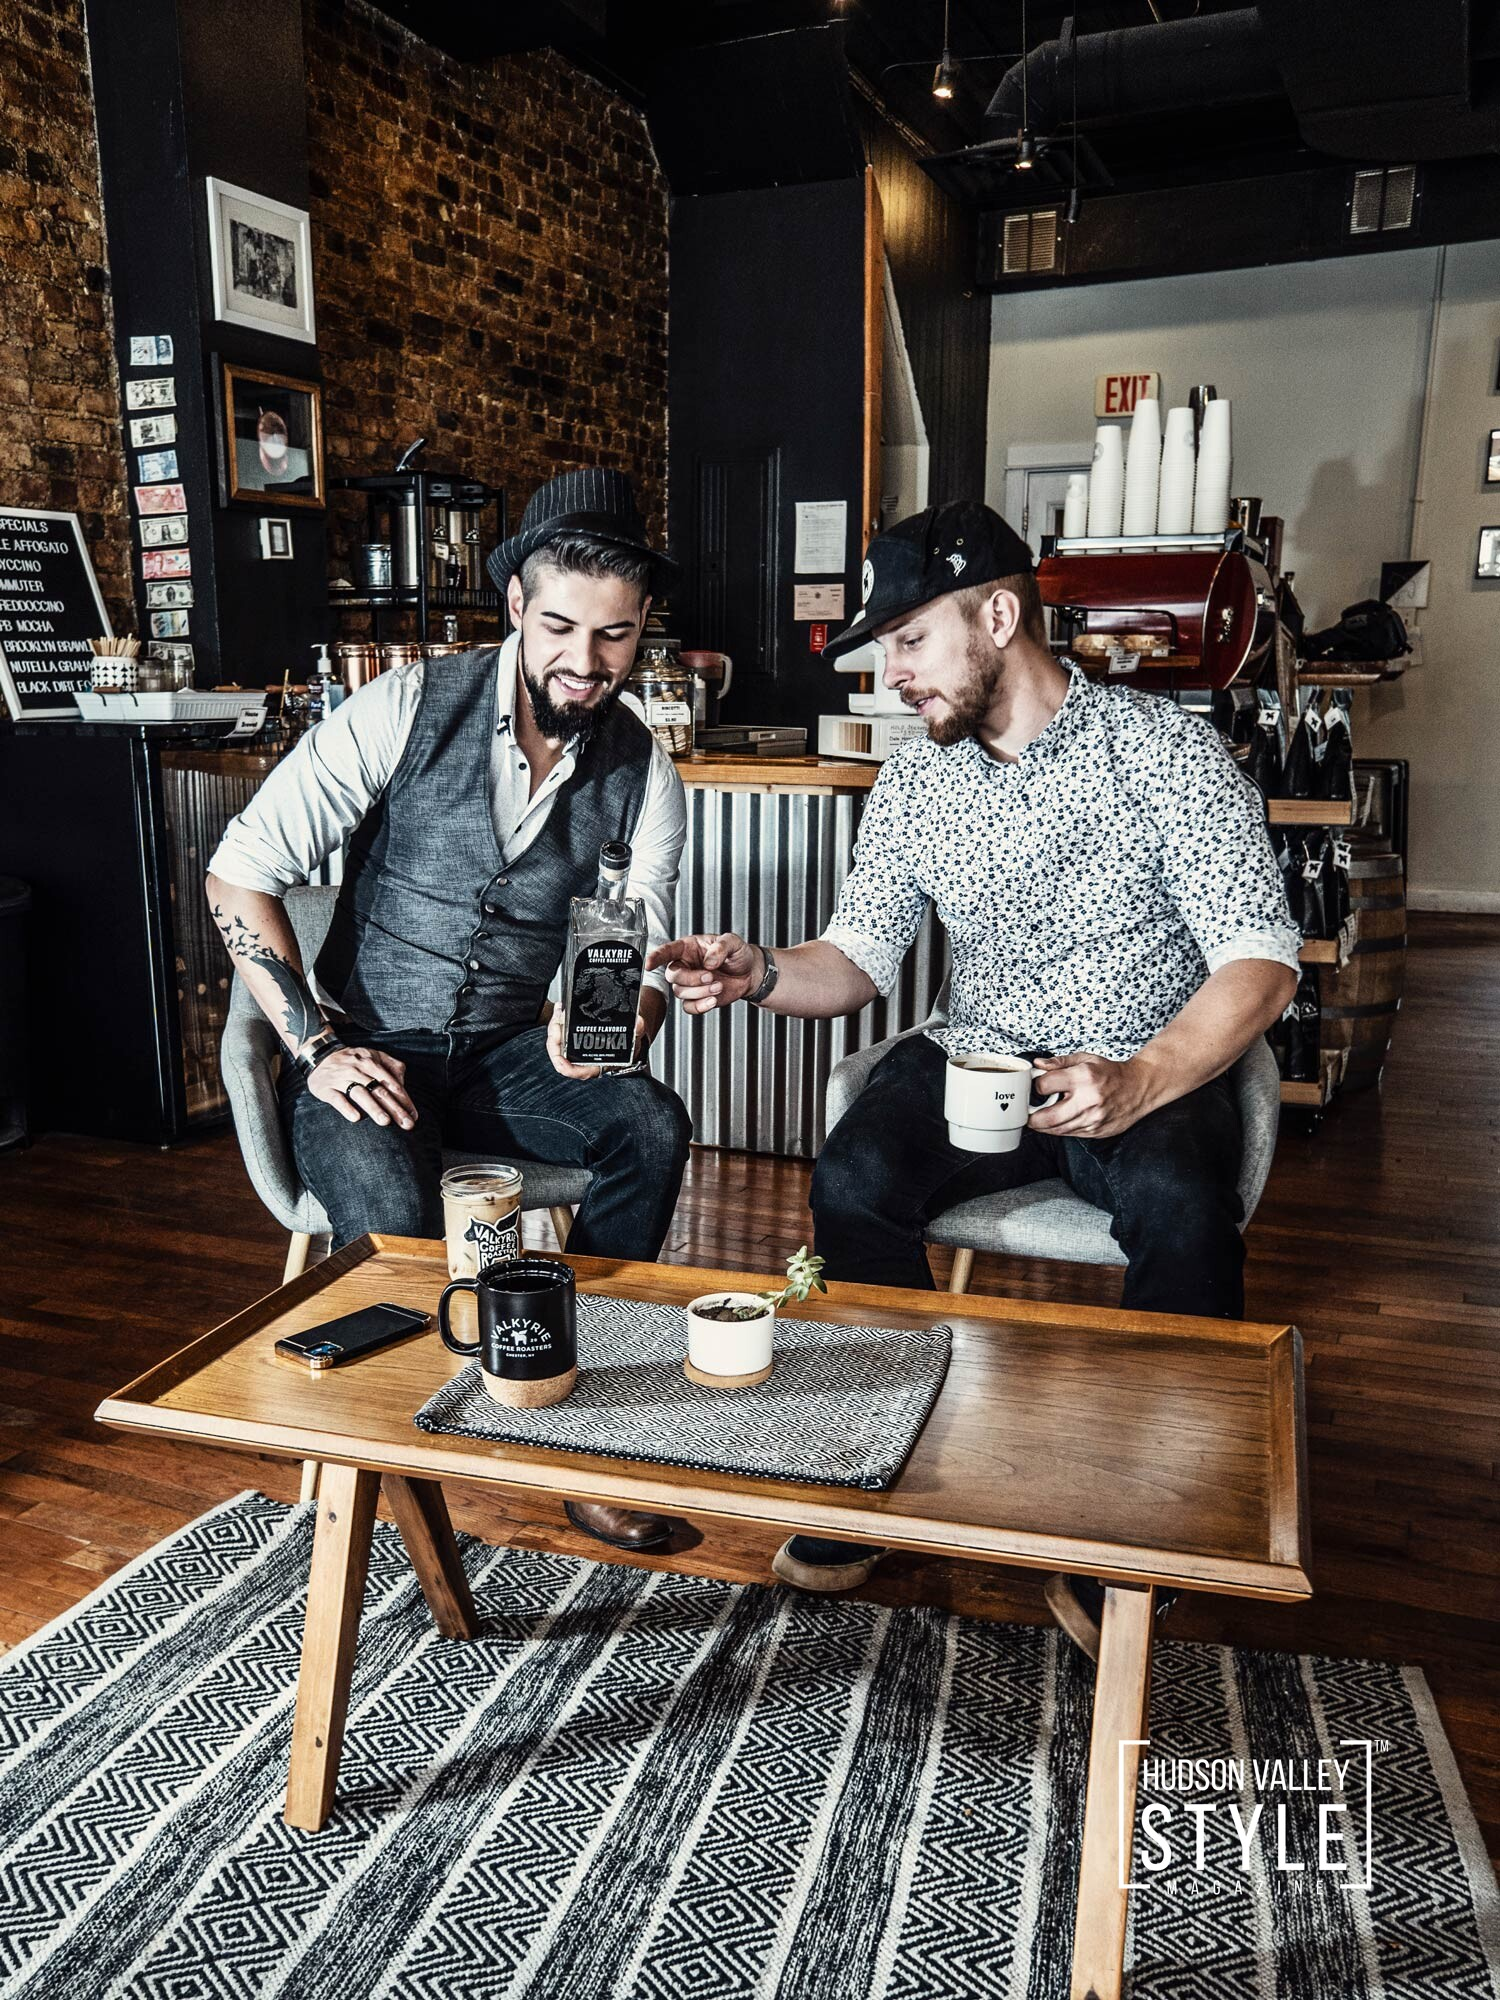 The best coffee-flavored vodka created in Hudson Valley, NY - Exploring Hudson Valley with Dino Alexander (CEO and Principal Broker at AlmaxRealty) – Lifestyle/Brand Photography by Maxwell Alexander, Duncan Avenue Studios